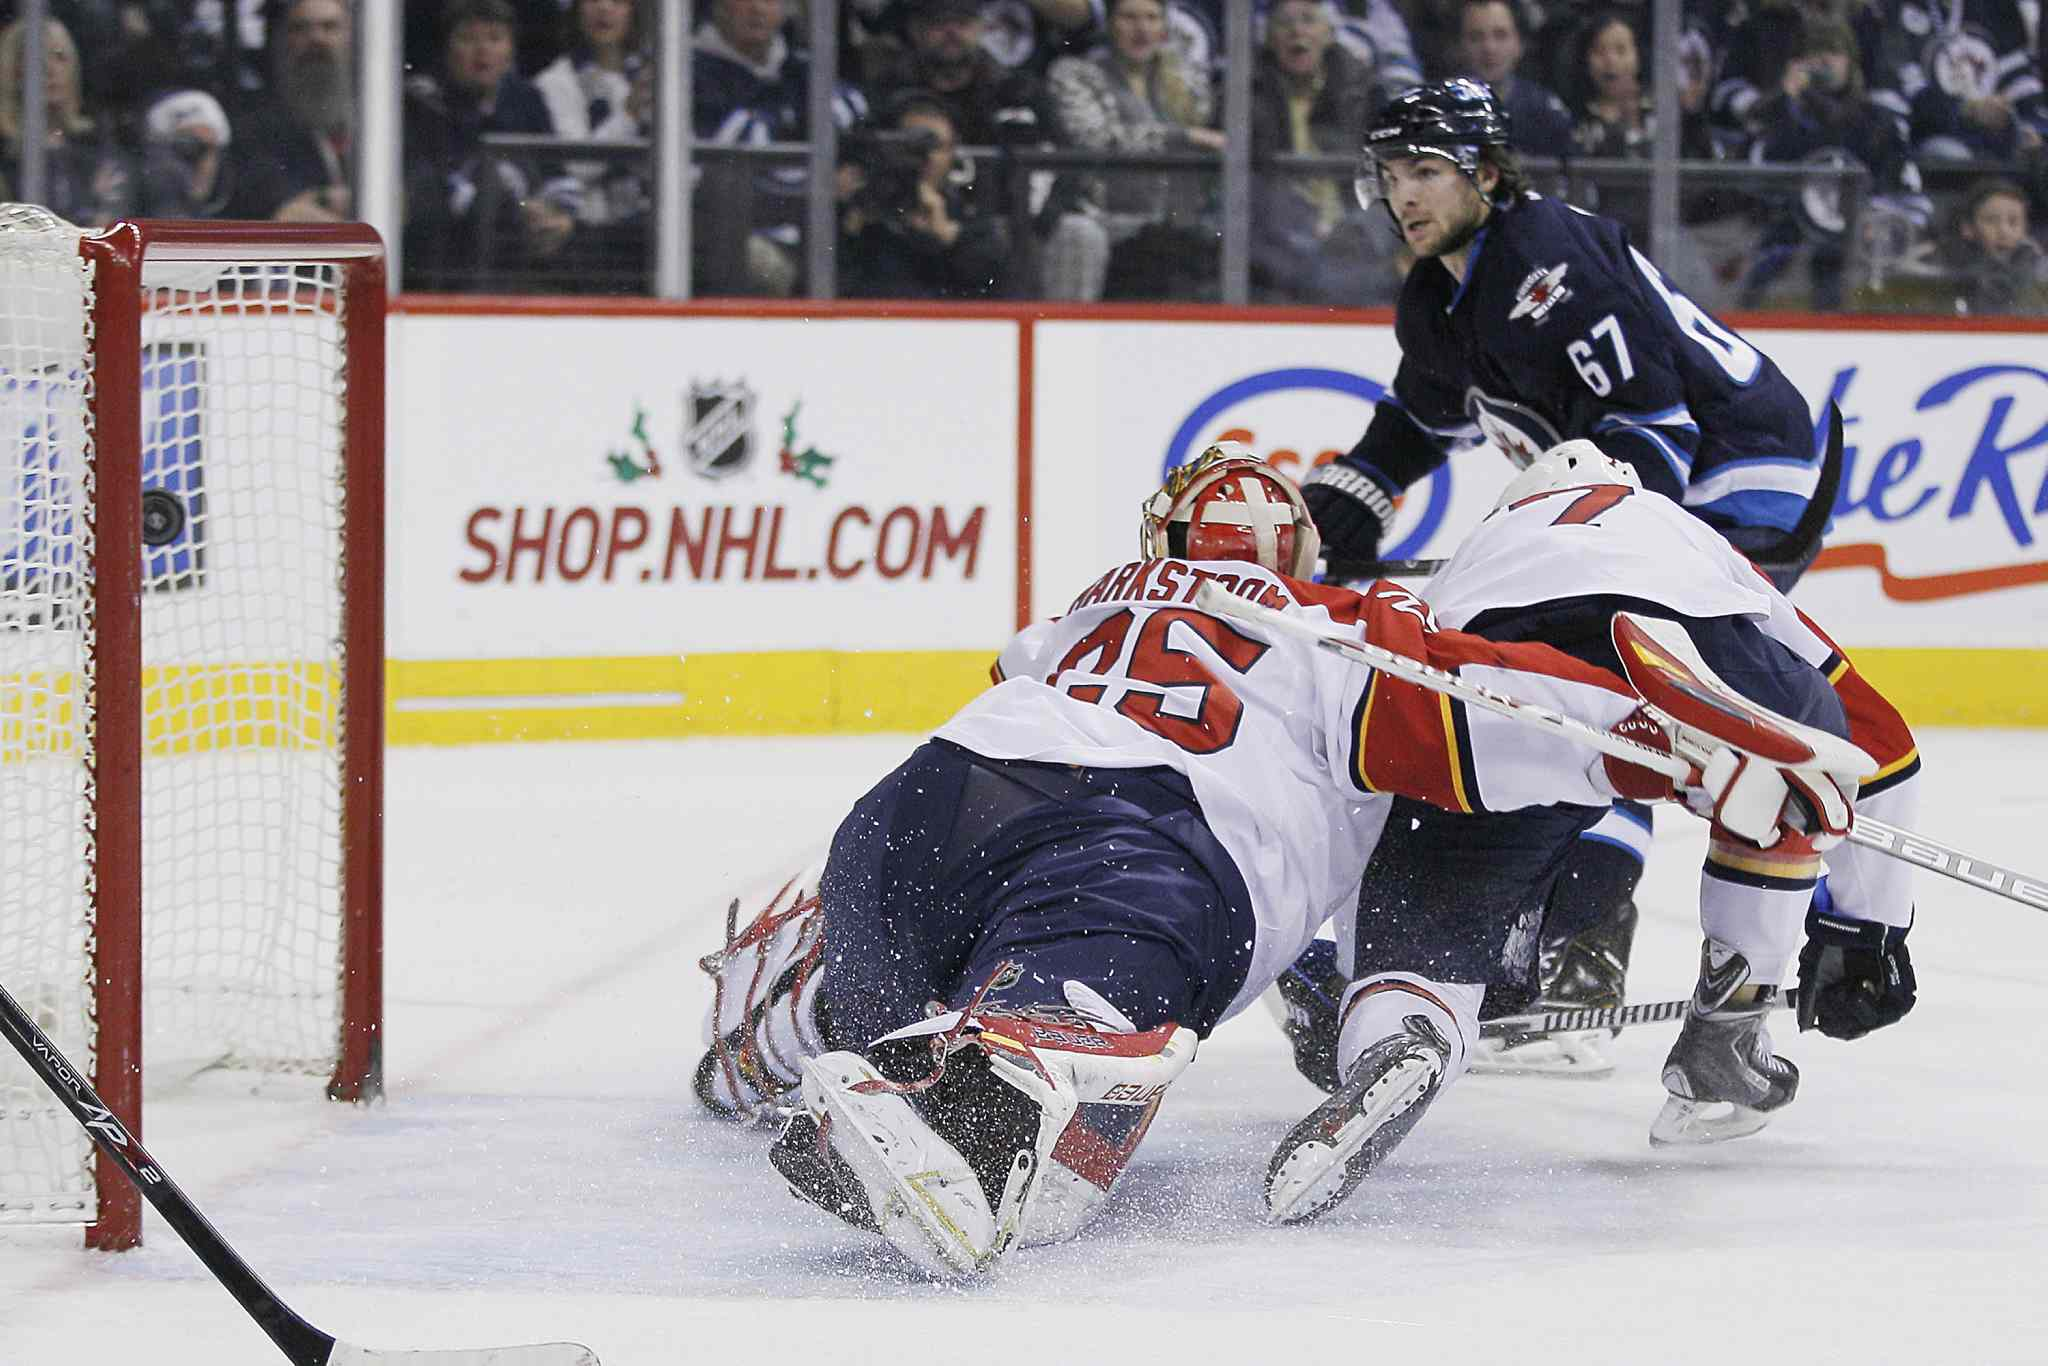 Winnipeg Jets' Michael Frolik (67) scores on Florida Panthers goaltender Jacob Markstrom (25) and Dmitry Kulikov (7) as Jets' Bryan Little (18) looks on during the second period.